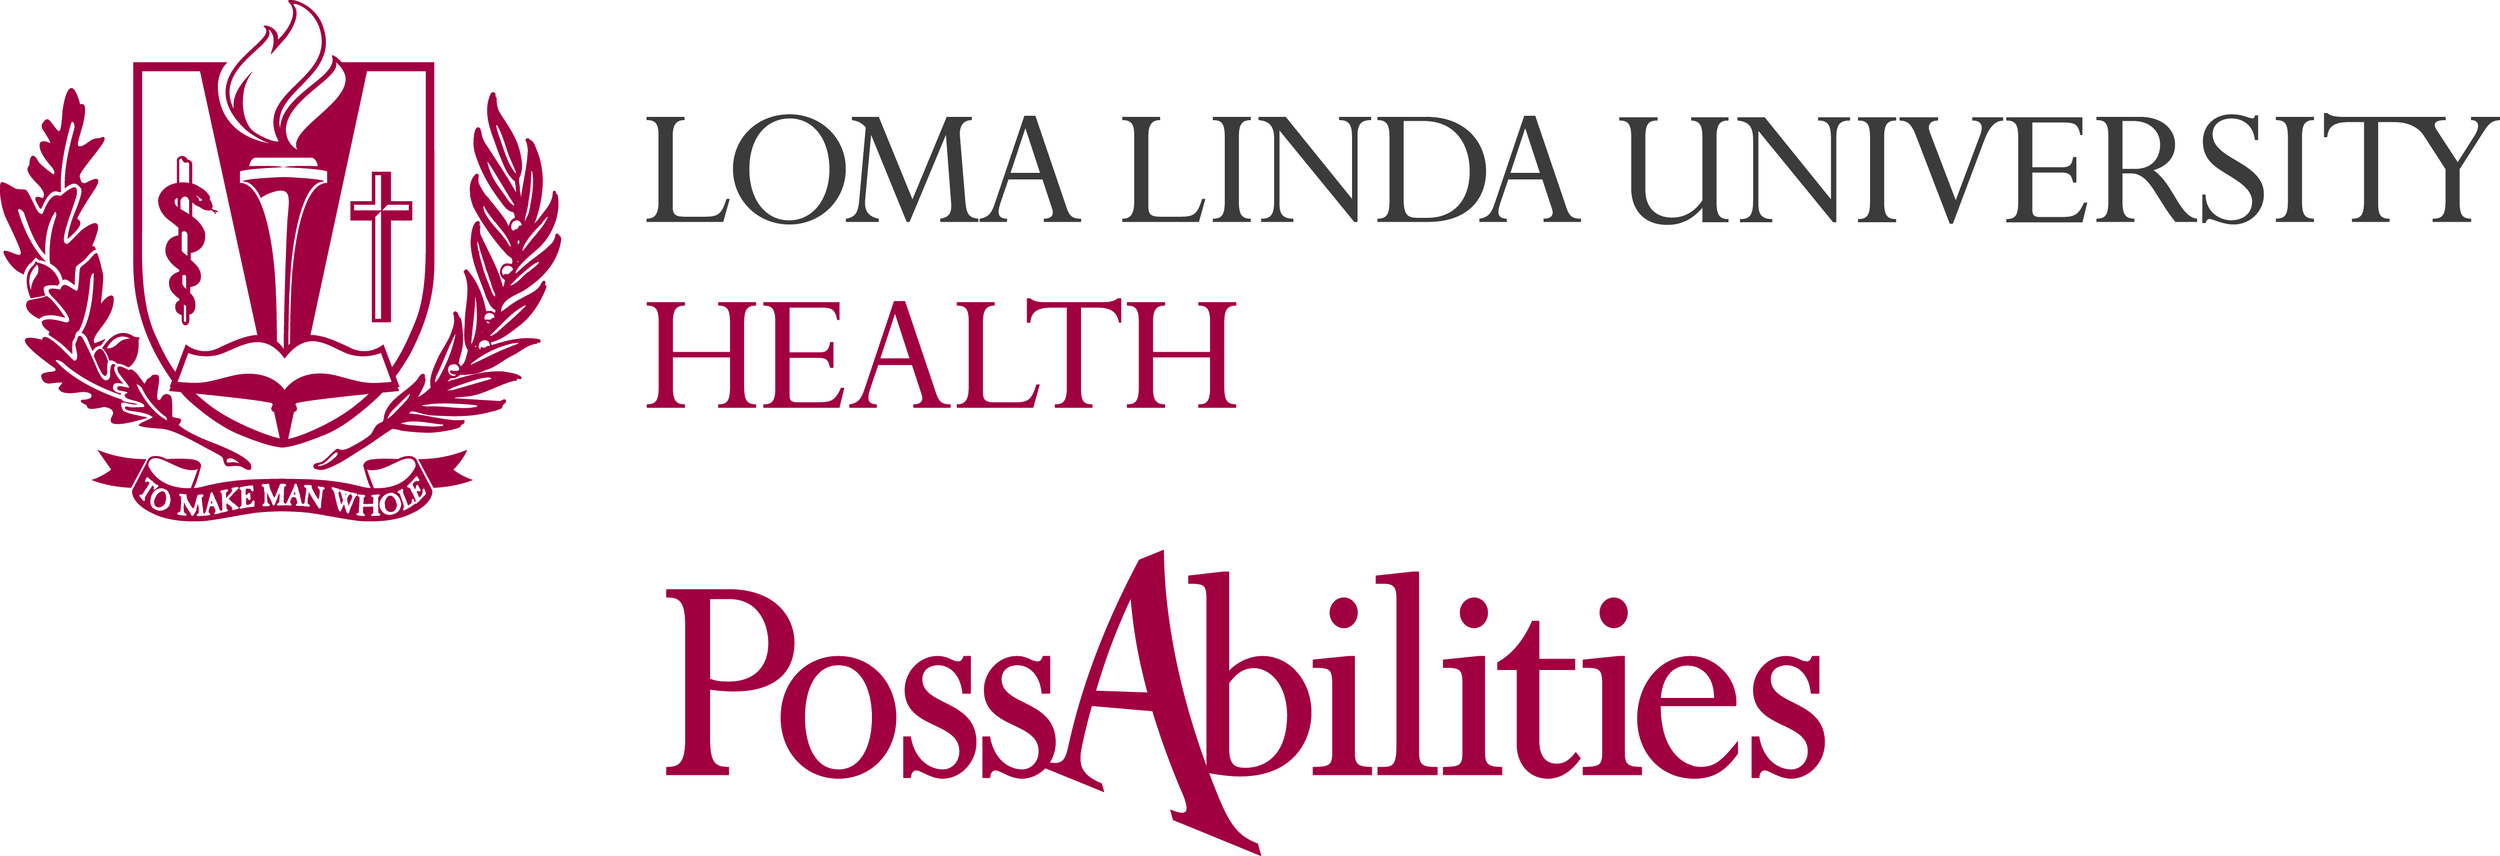 Loma LInda University PossAbilities